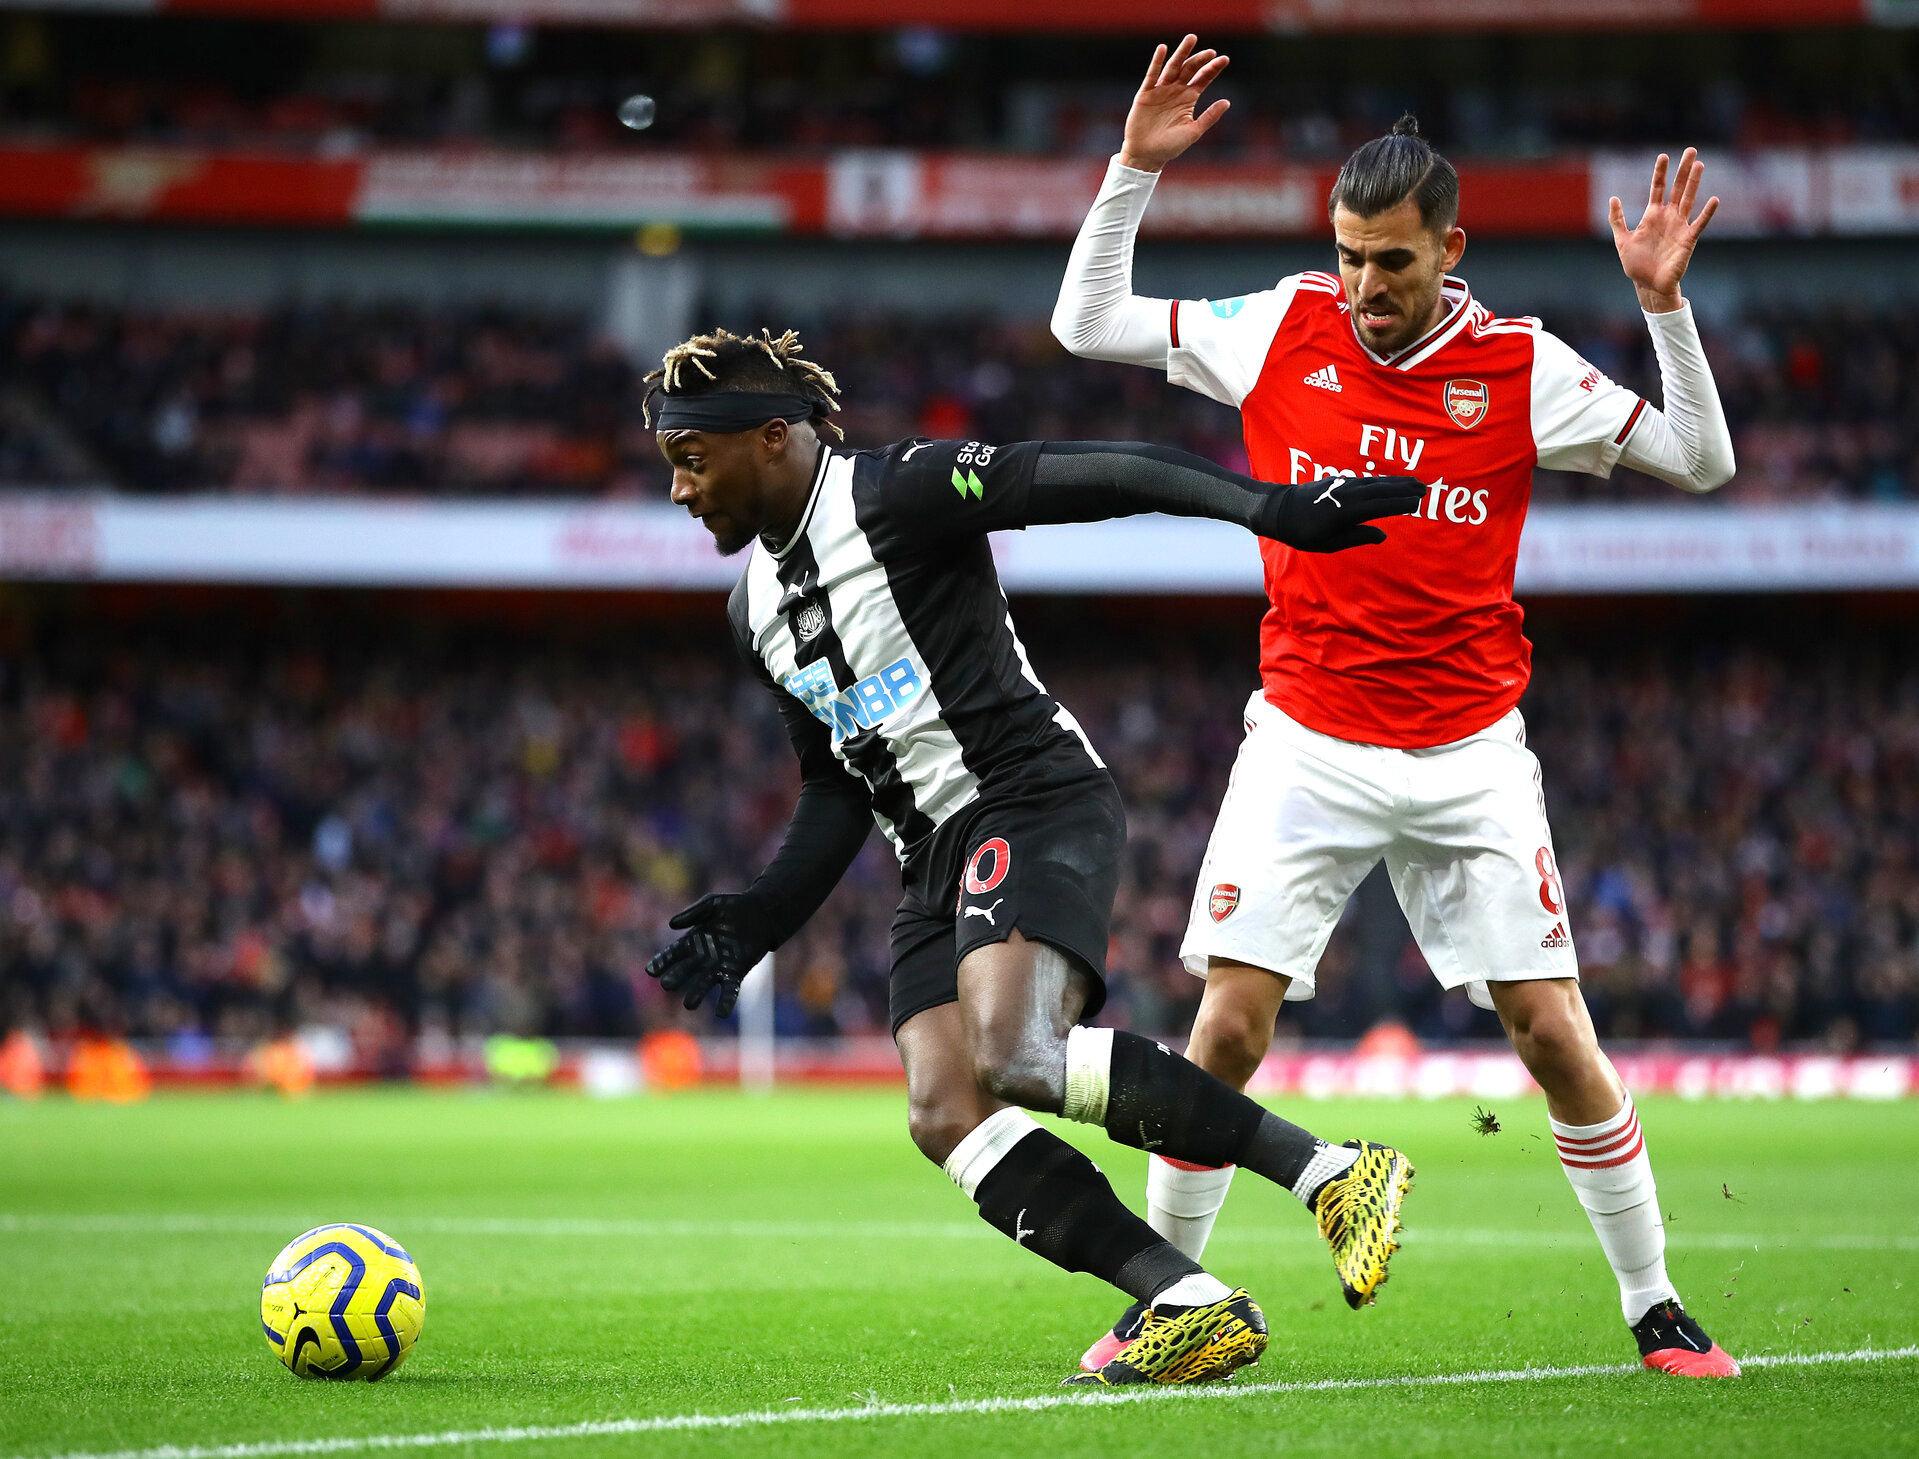 LONDON, ENGLAND - FEBRUARY 16: Allan Saint-Maximin of Newcastle United goes past Dani Ceballos of Arsenal during the Premier League match between Arsenal FC and Newcastle United at Emirates Stadium on February 16, 2020 in London, United Kingdom. (Photo by Richard Heathcote/Getty Images)